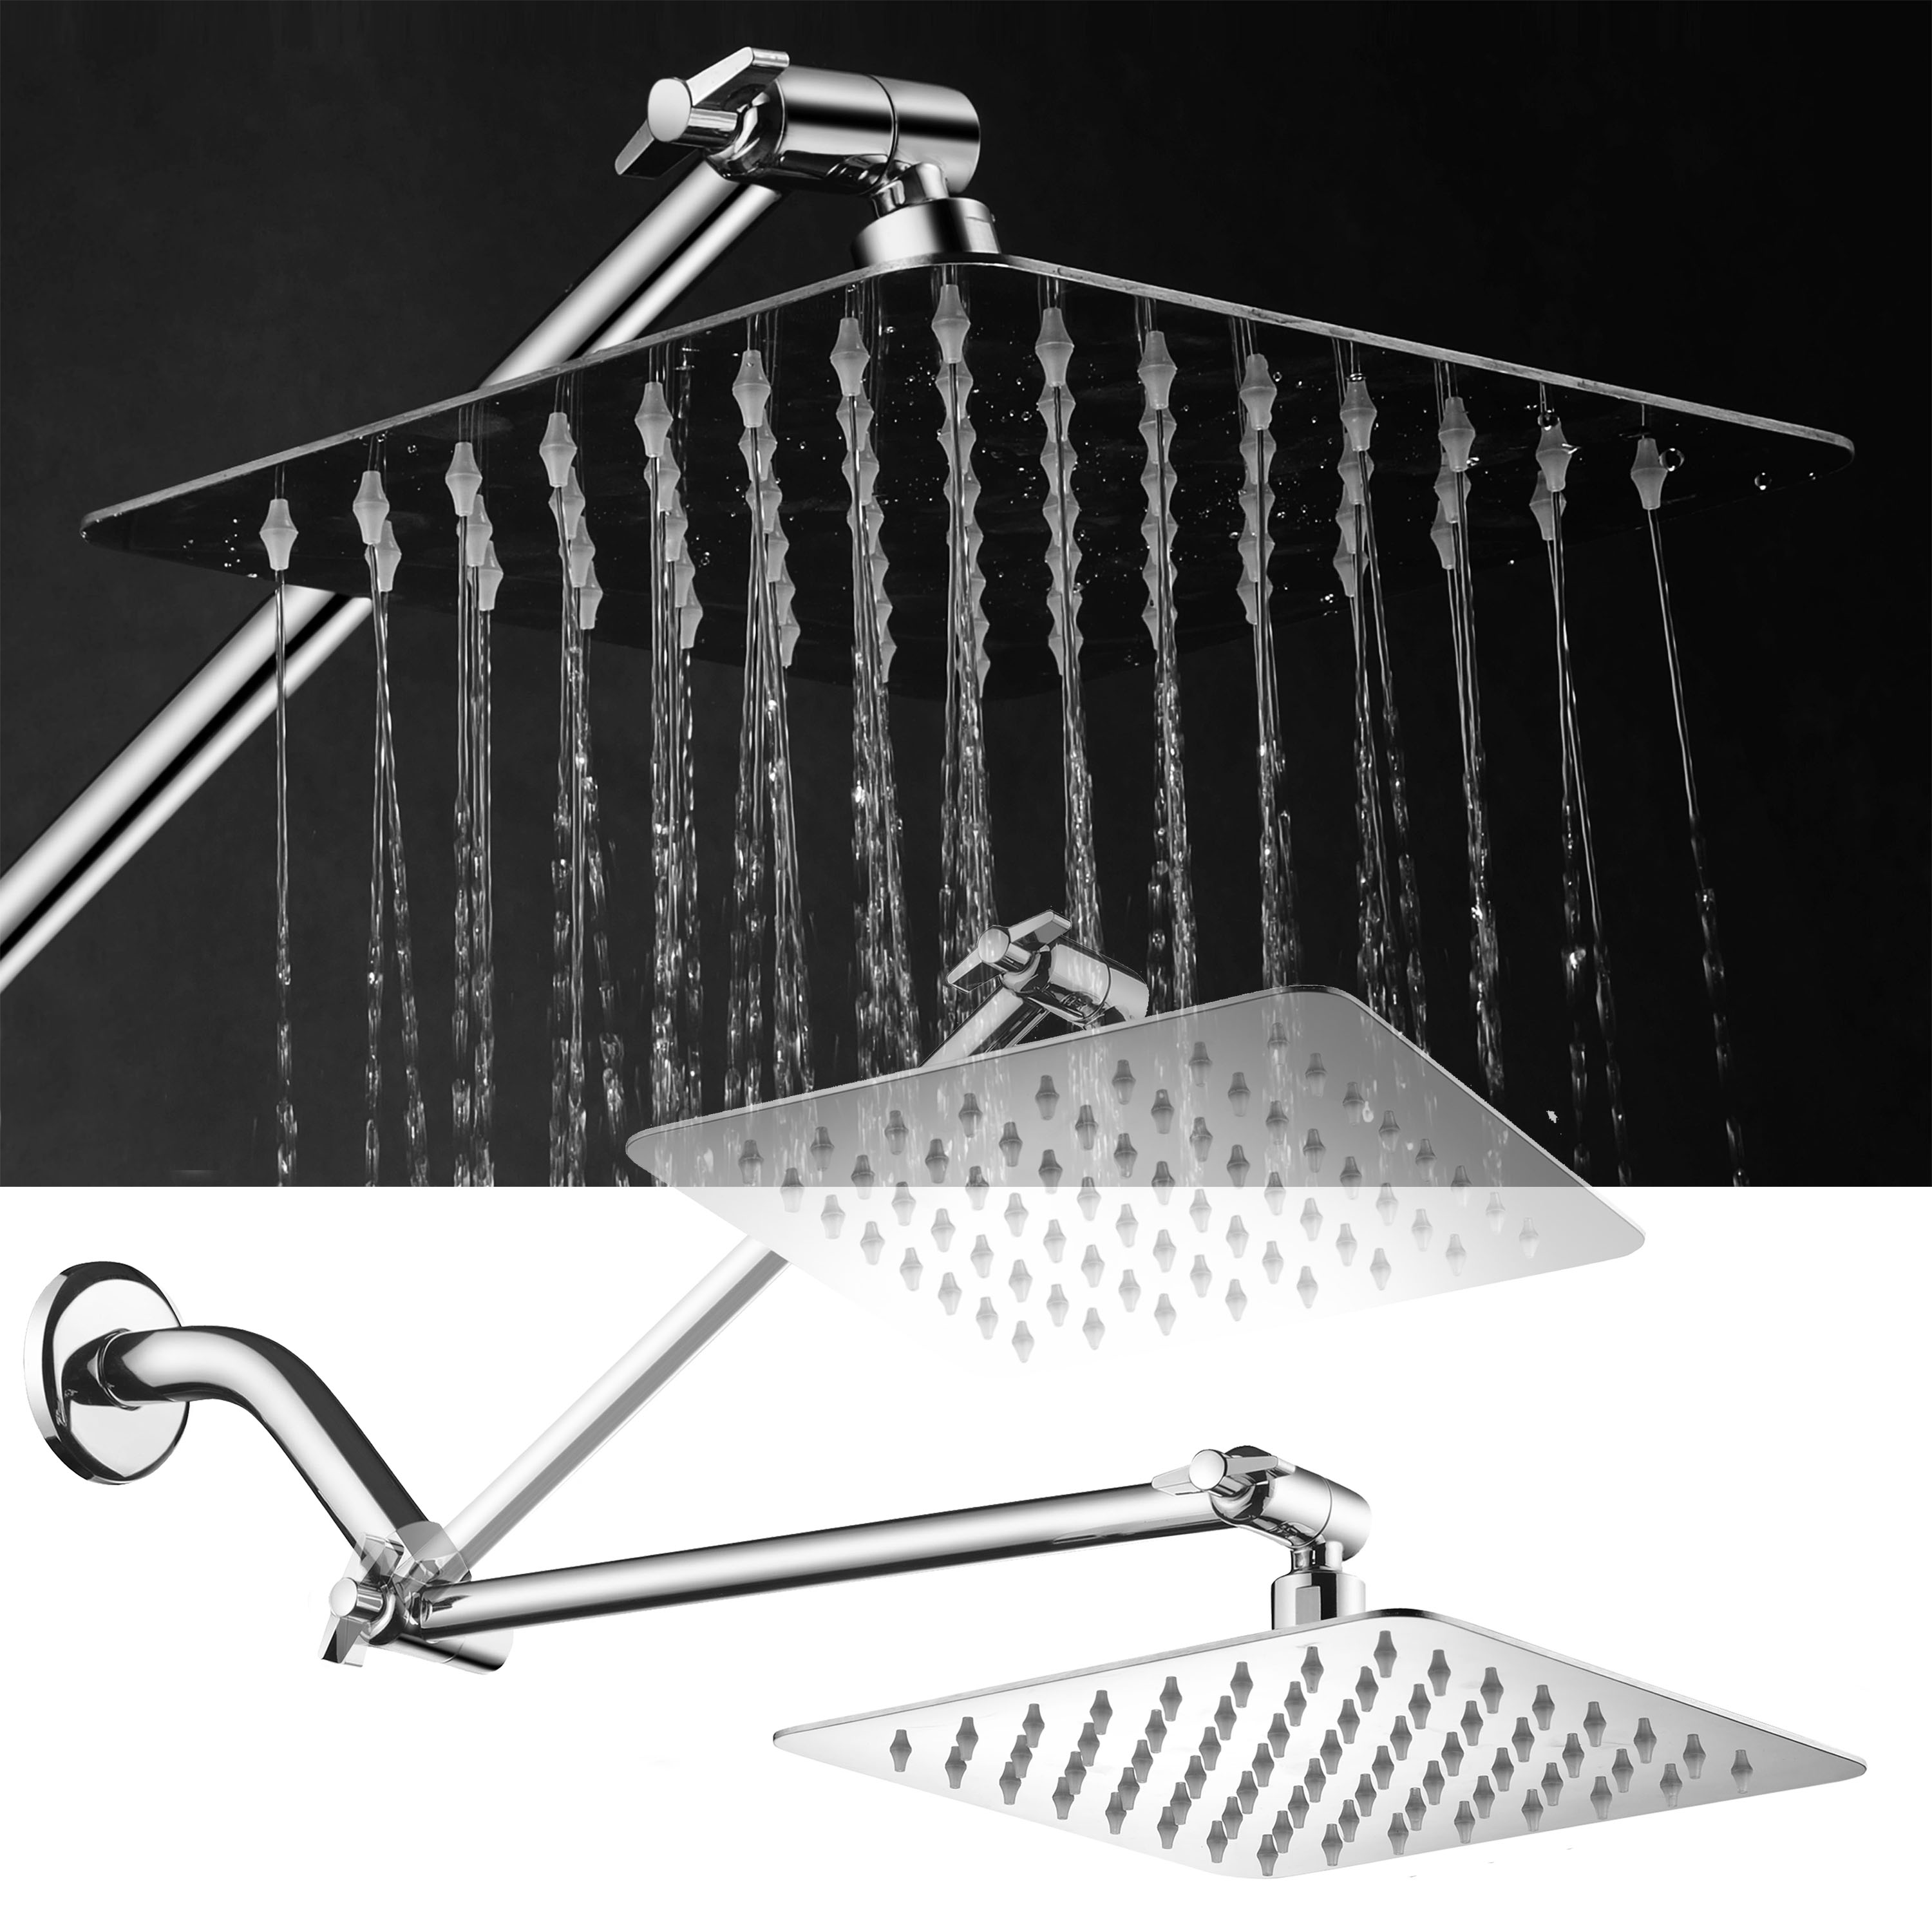 HotelSpa® Mega-Size 8-inch Stainless Steel Square Rainfall Shower Head with Solid Brass 12-inch Extension Arm